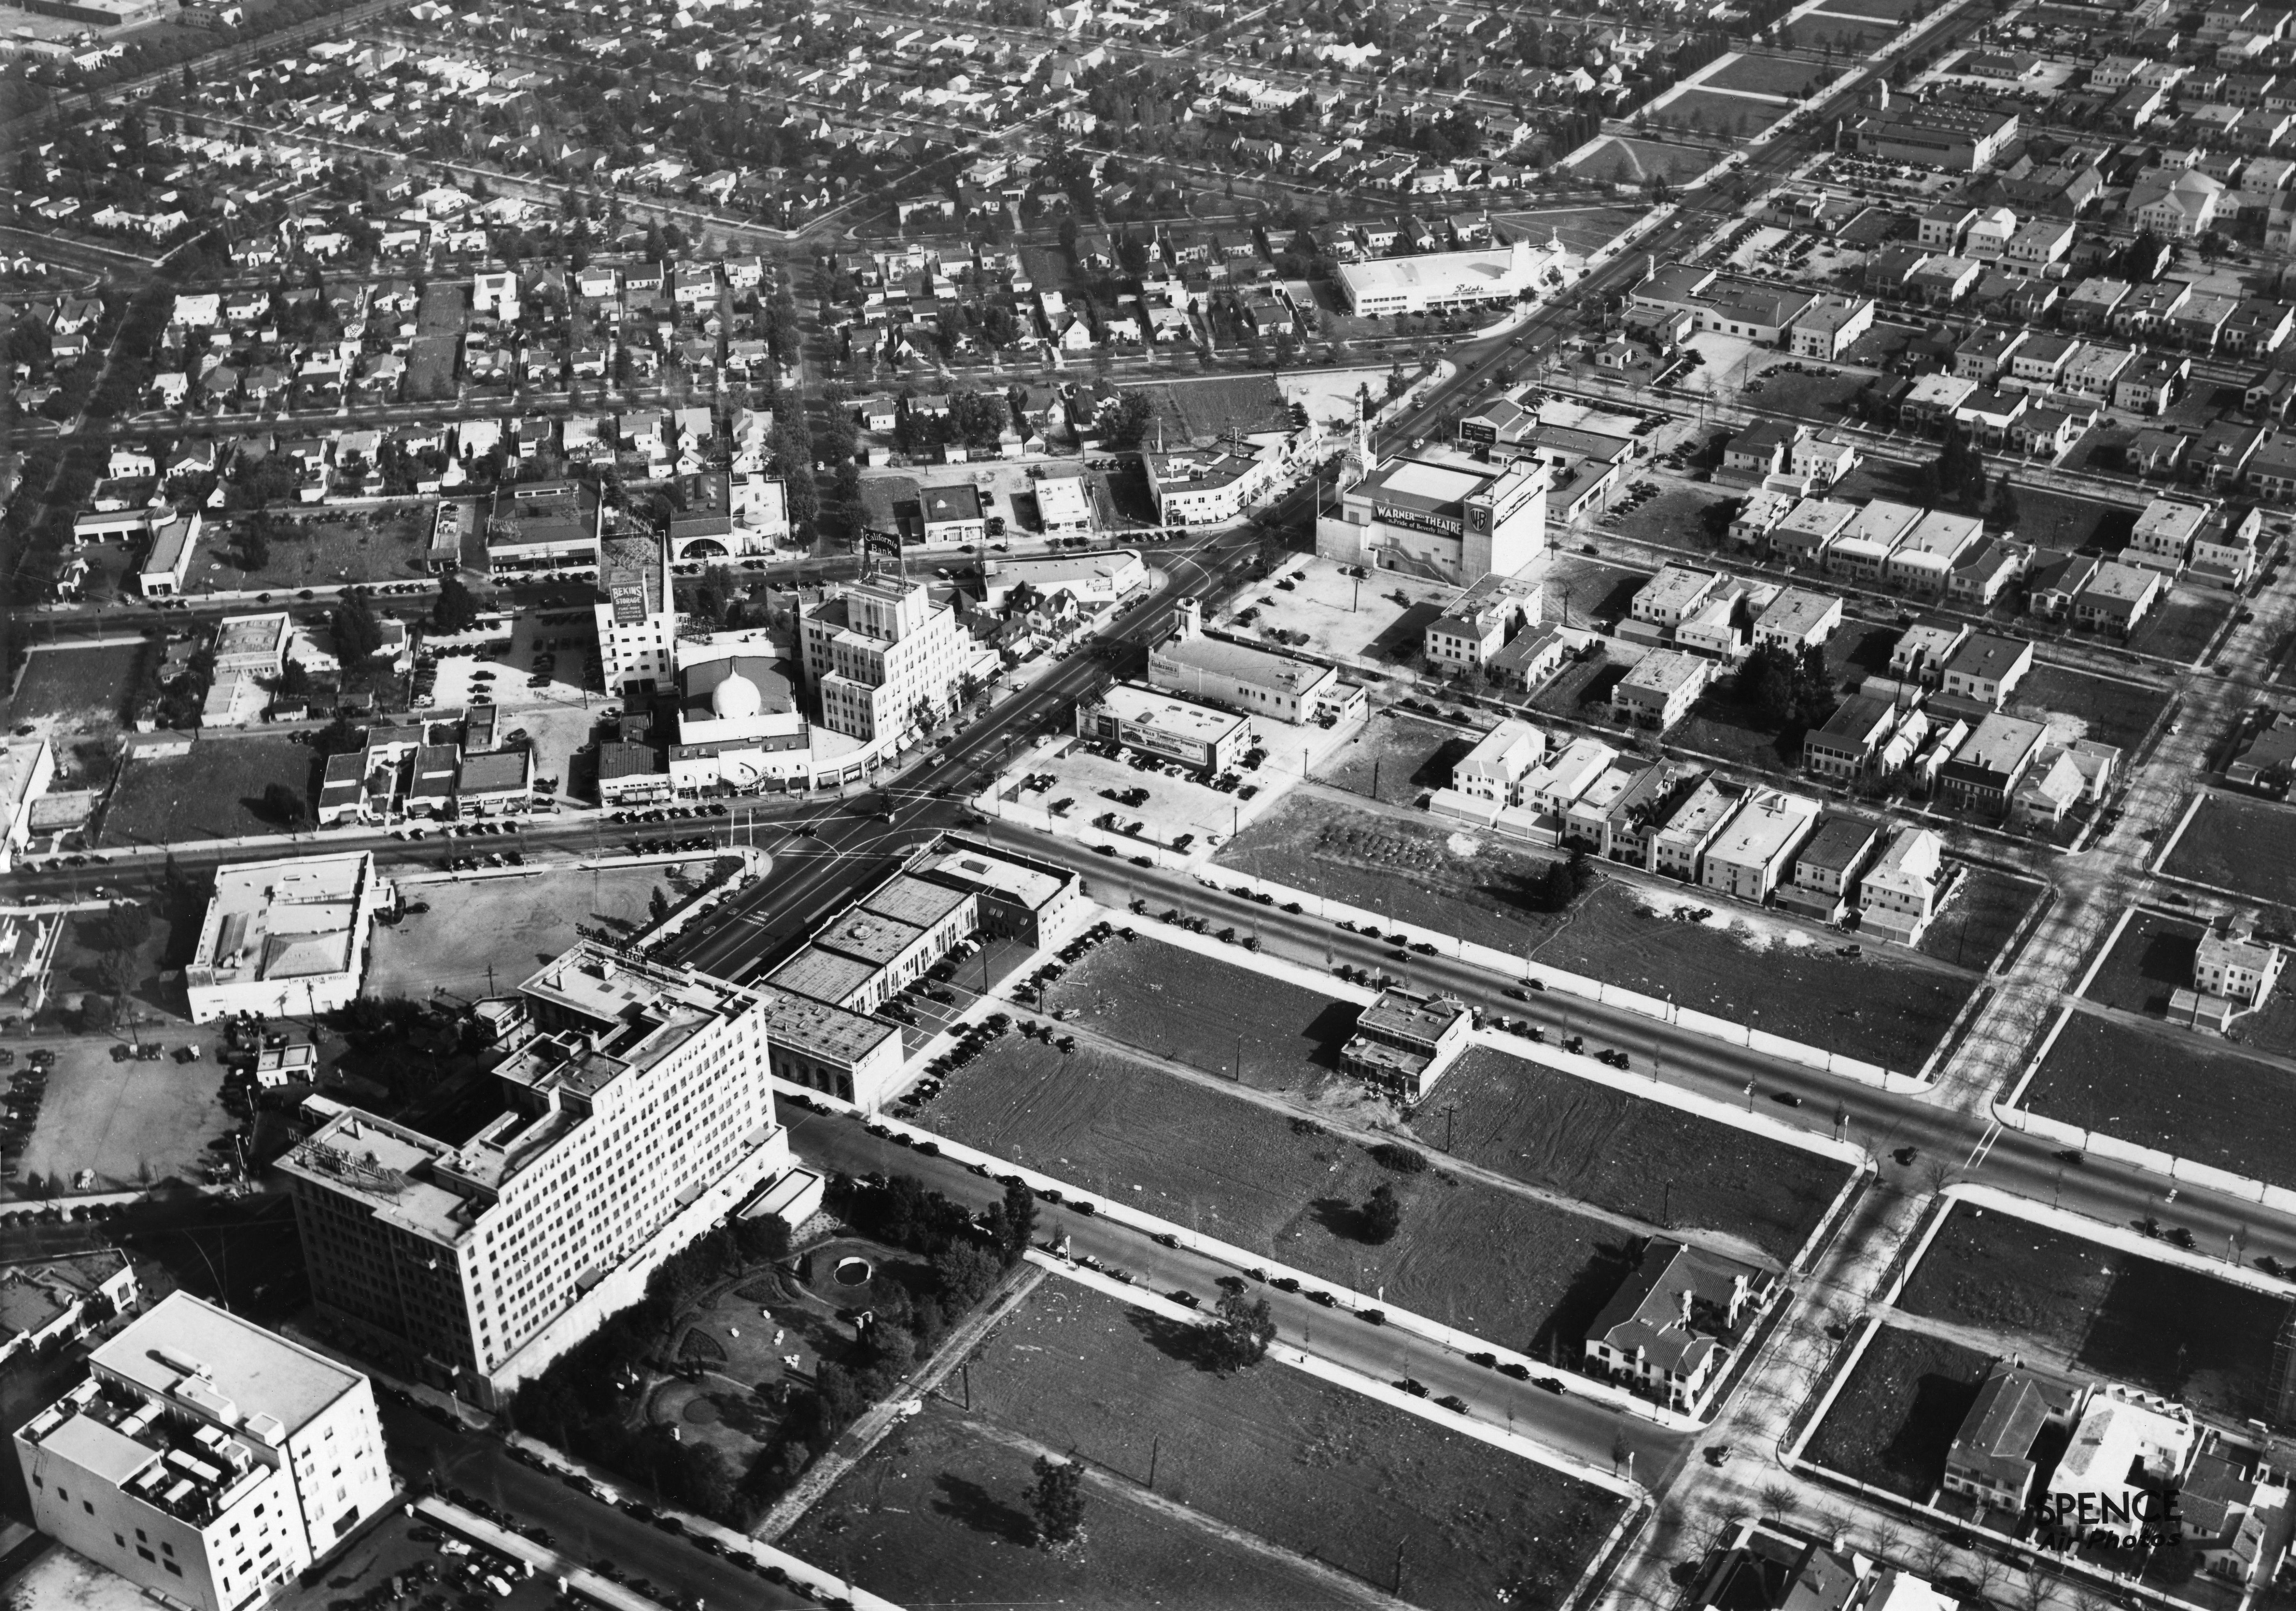 Ariel Shot Of Hotel In 1937 Pre Beverly Wing Photo Compliments Of Marc Wanamaker Los Angeles History Los Angeles Hollywood California History